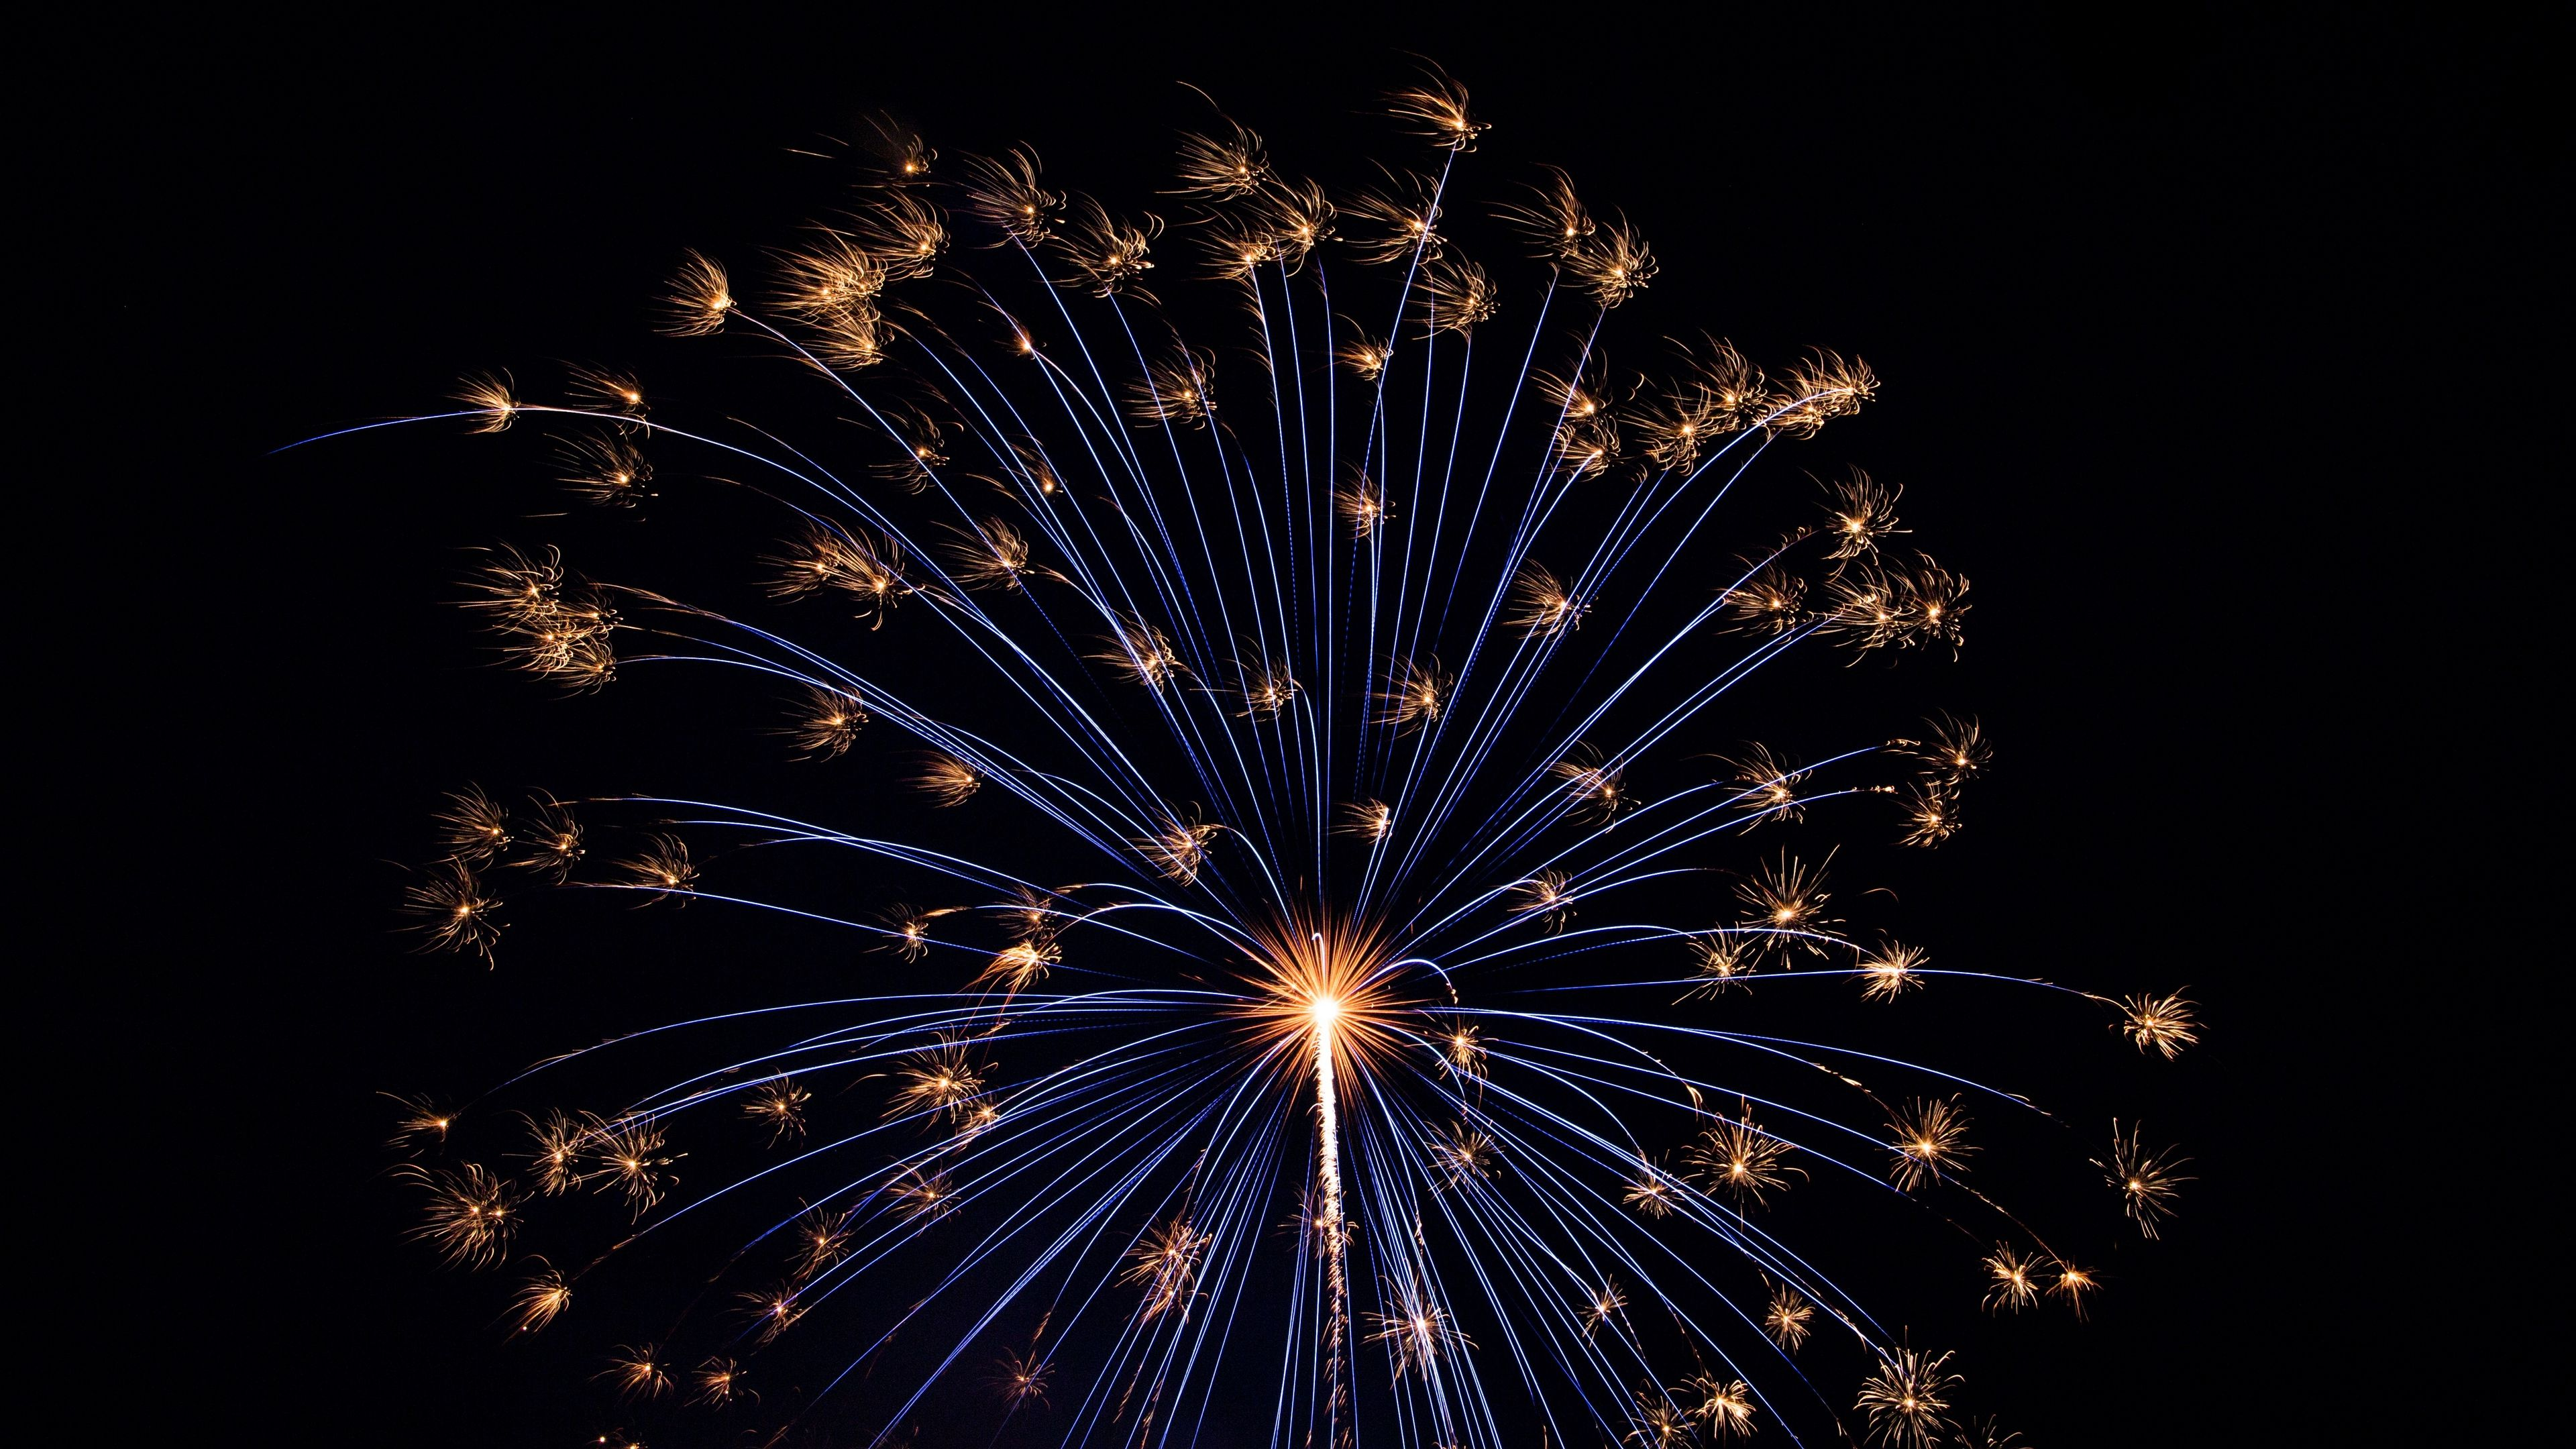 Salute Fireworks Holiday 4k Salute Holiday Fireworks Fireworks Wallpaper Beautiful Wallpapers Colorful Wallpaper